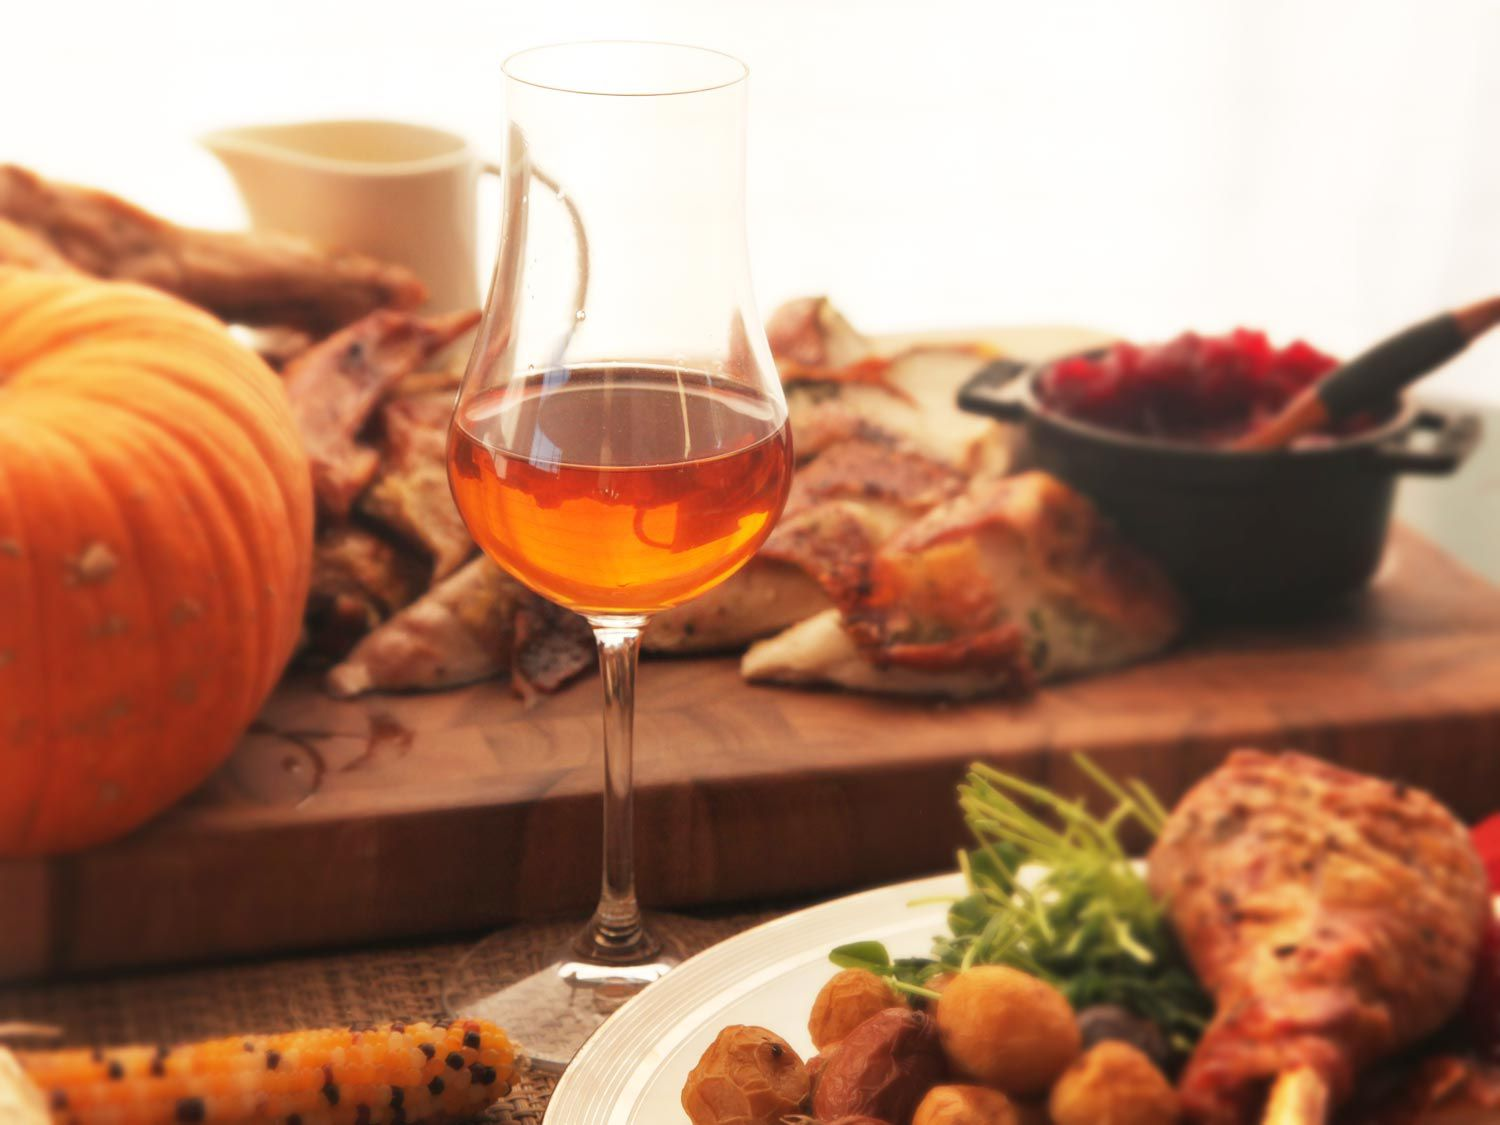 A glass of wine surrounded by a Thanksgiving spread.